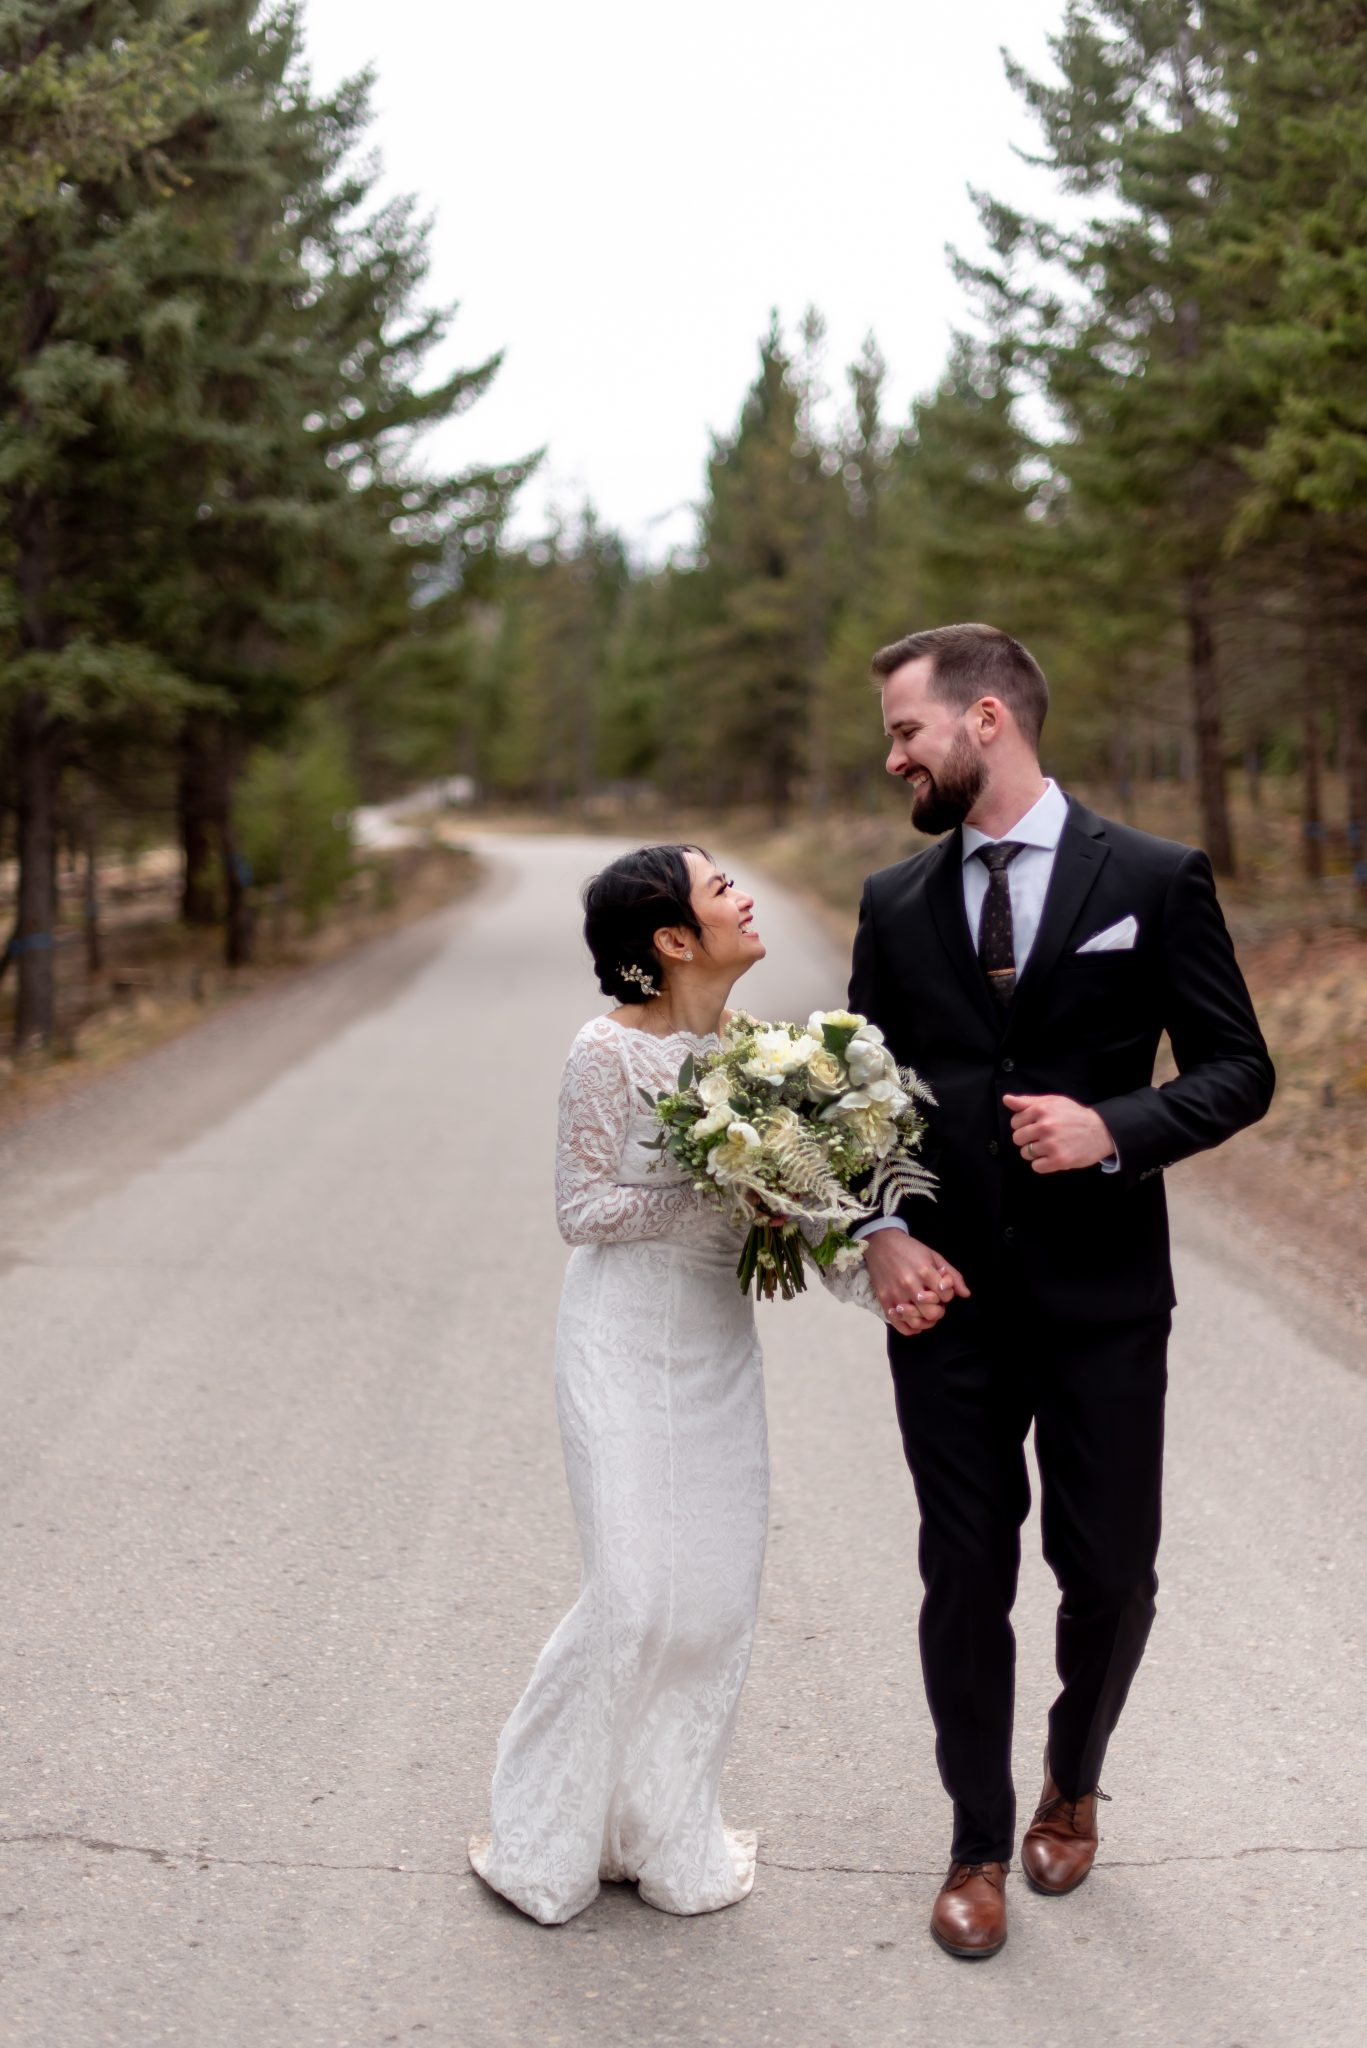 Bride and groom run on a road mountain road for their elopement in Jasper National Park